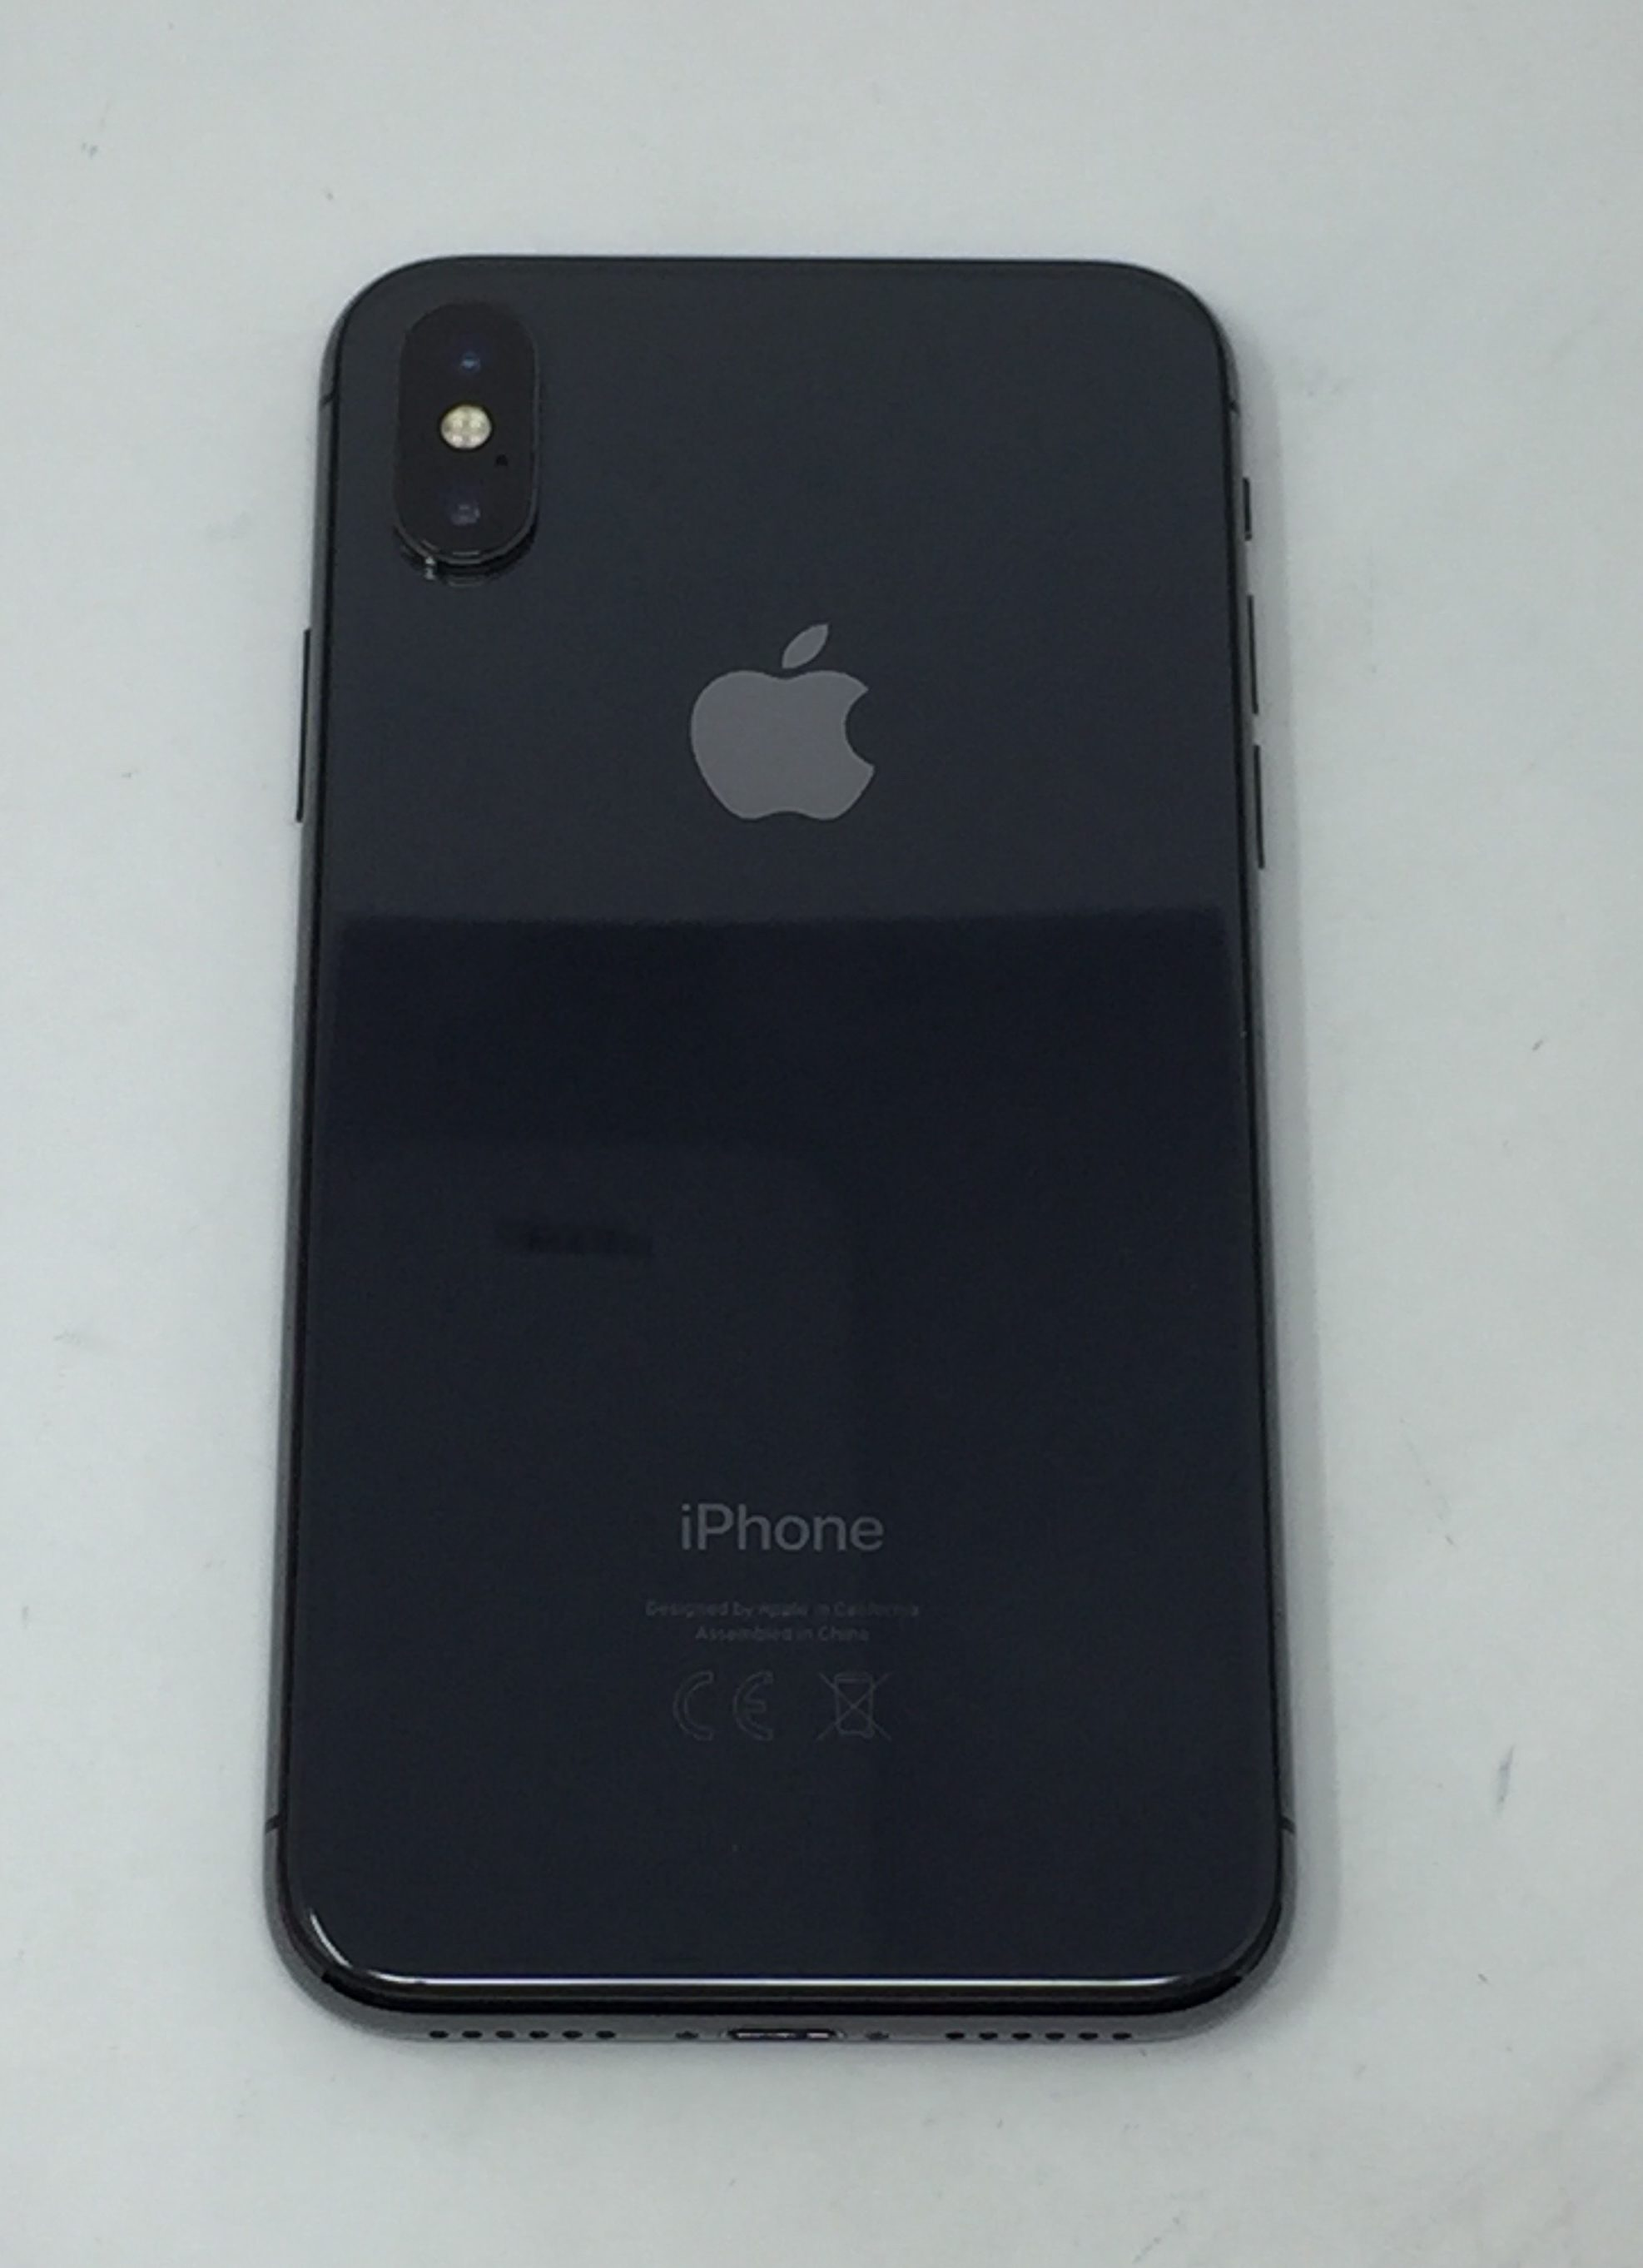 iPhone X 256GB, 256 GB, SPACE GRAY, imagen 2